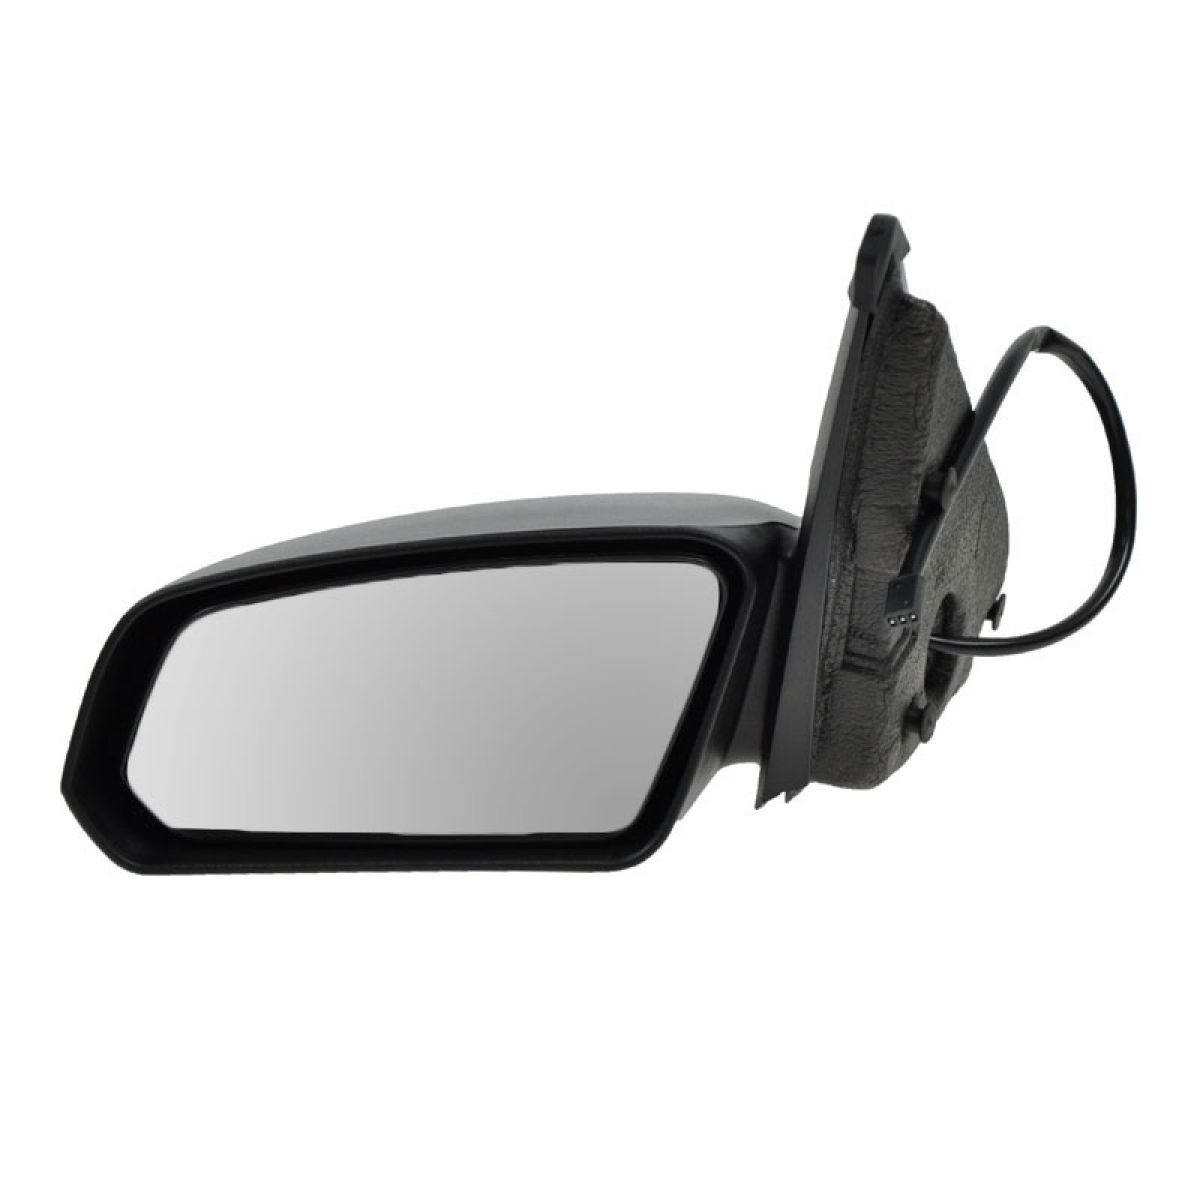 03-07 Saturn Ion Sedan Drivers Side View Power Mirror Textured Assembly